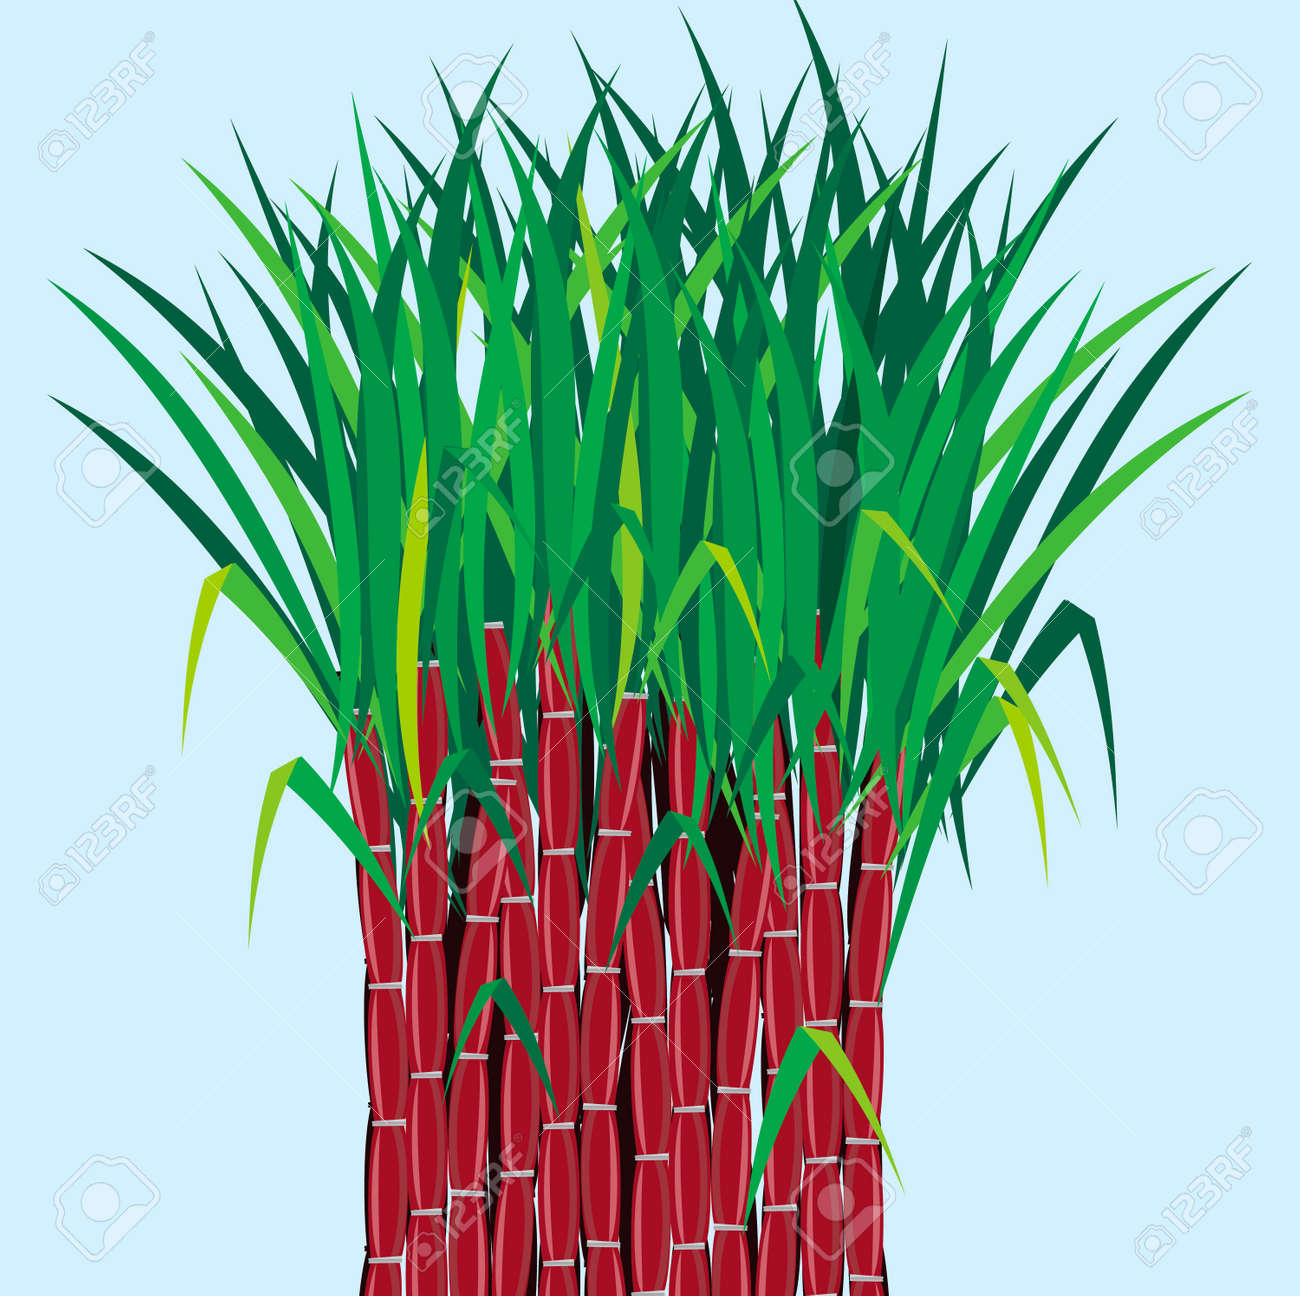 sugarcane plants grow in field royalty free cliparts vectors and rh 123rf com pongal sugarcane clipart sugar cane clipart black and white